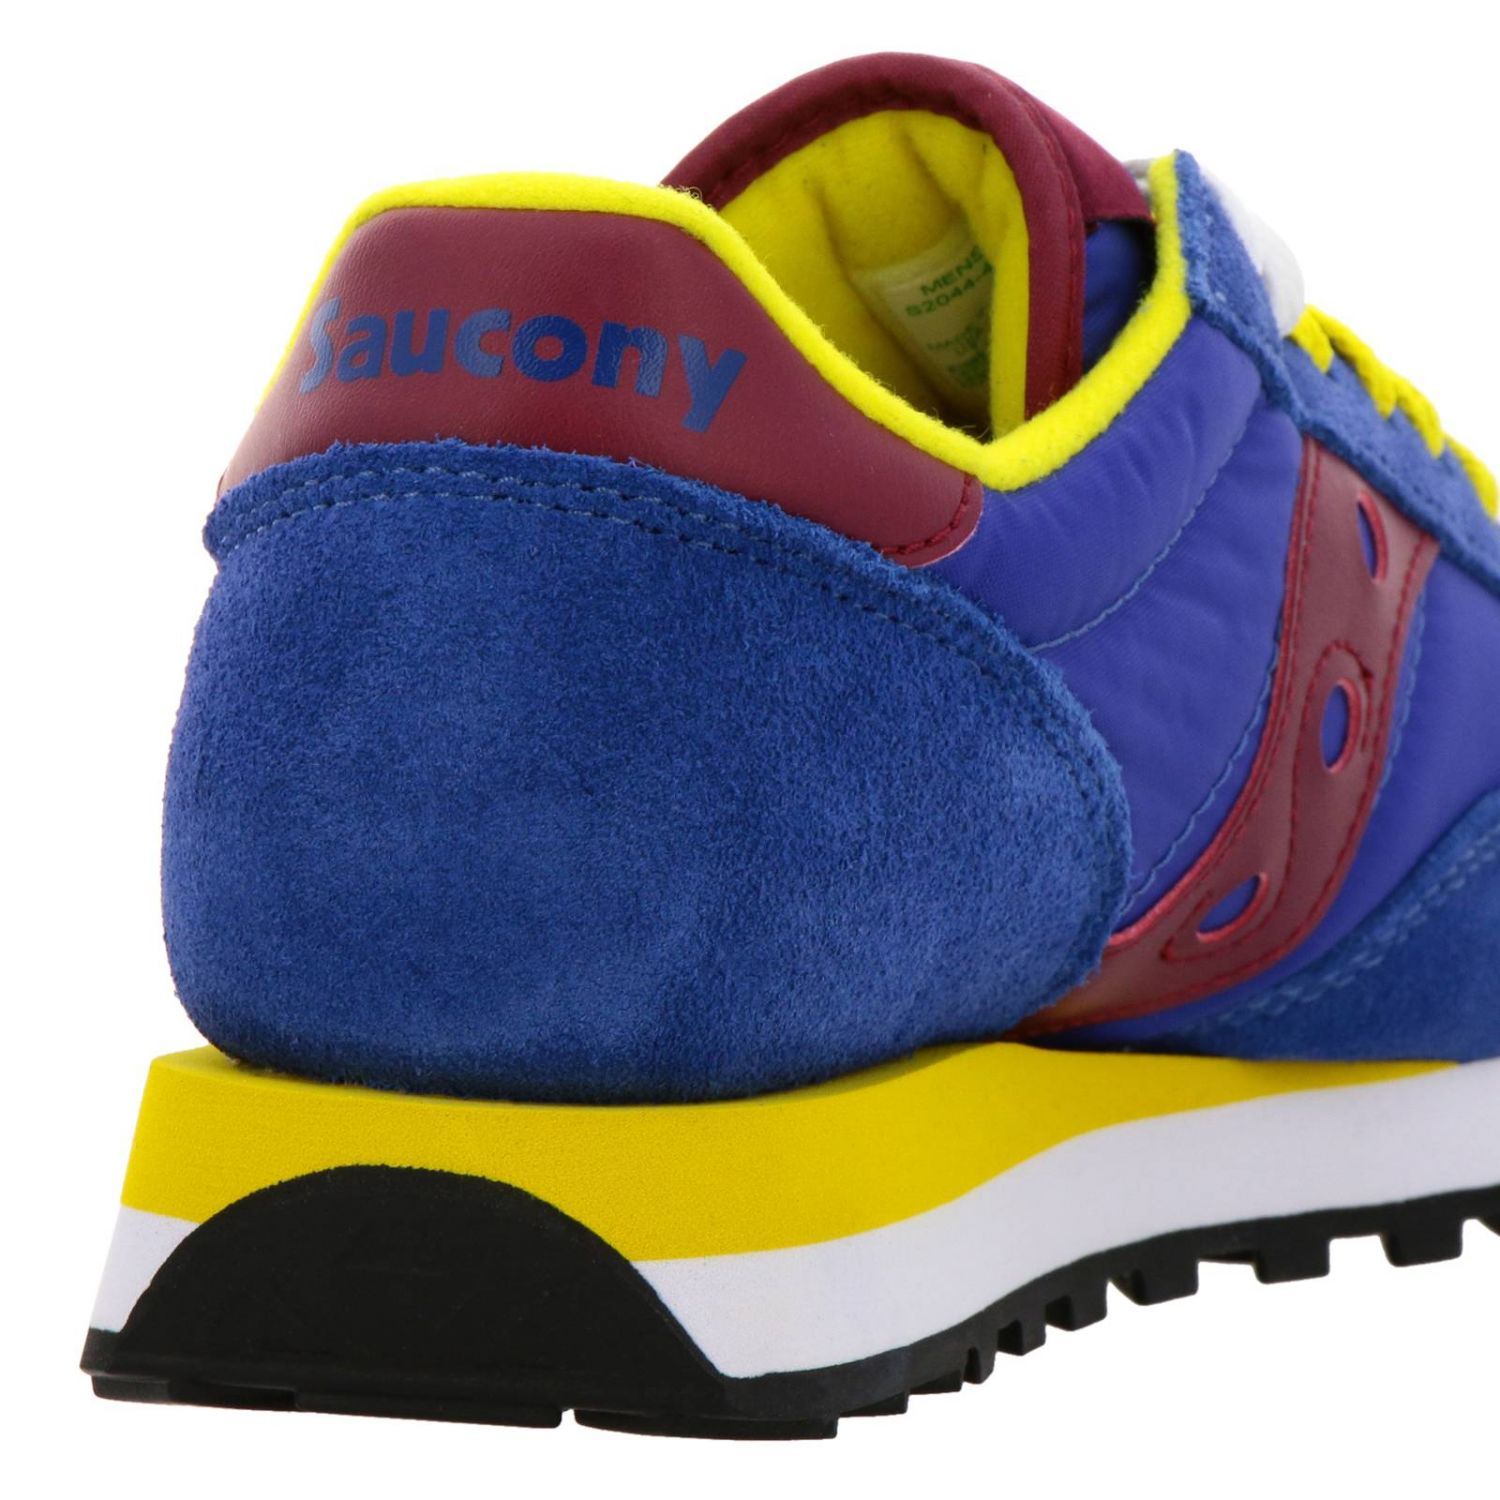 Sneakers Jazz Original Men Saucony in pelle scamosciata pelle liscia e nylon con intersuola Eva blue 4